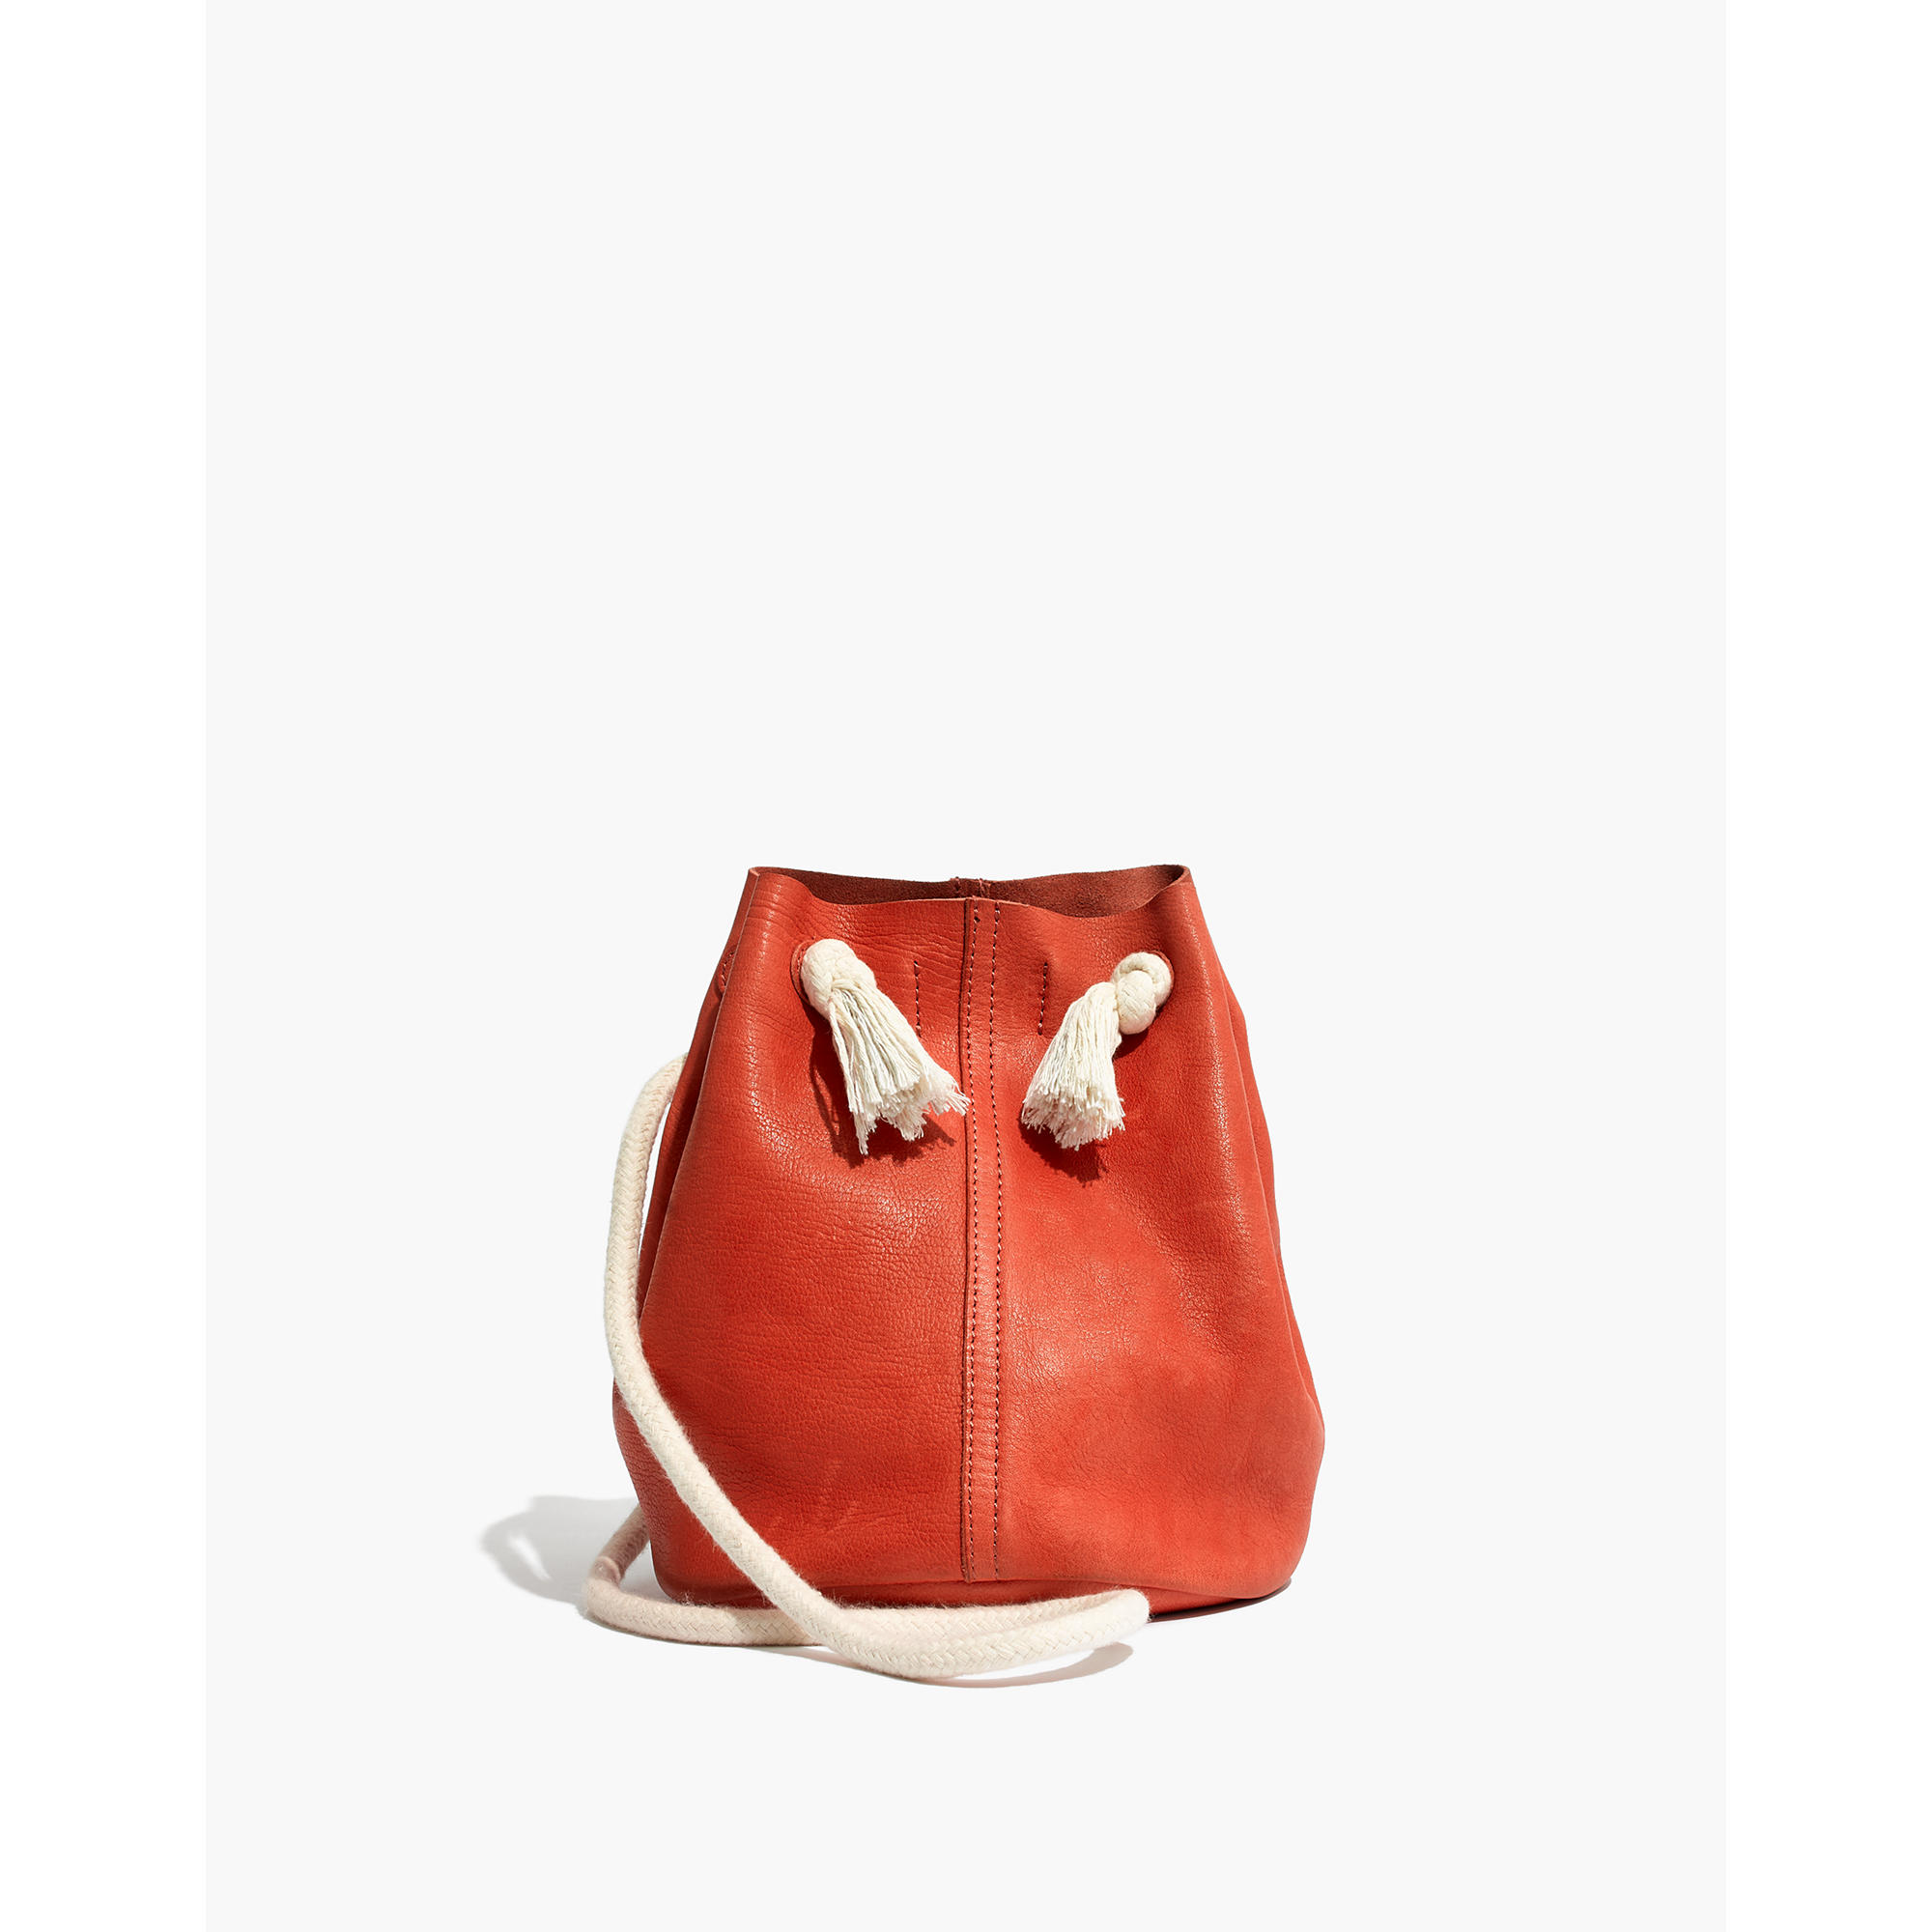 The Siena Convertible Bucket Bag